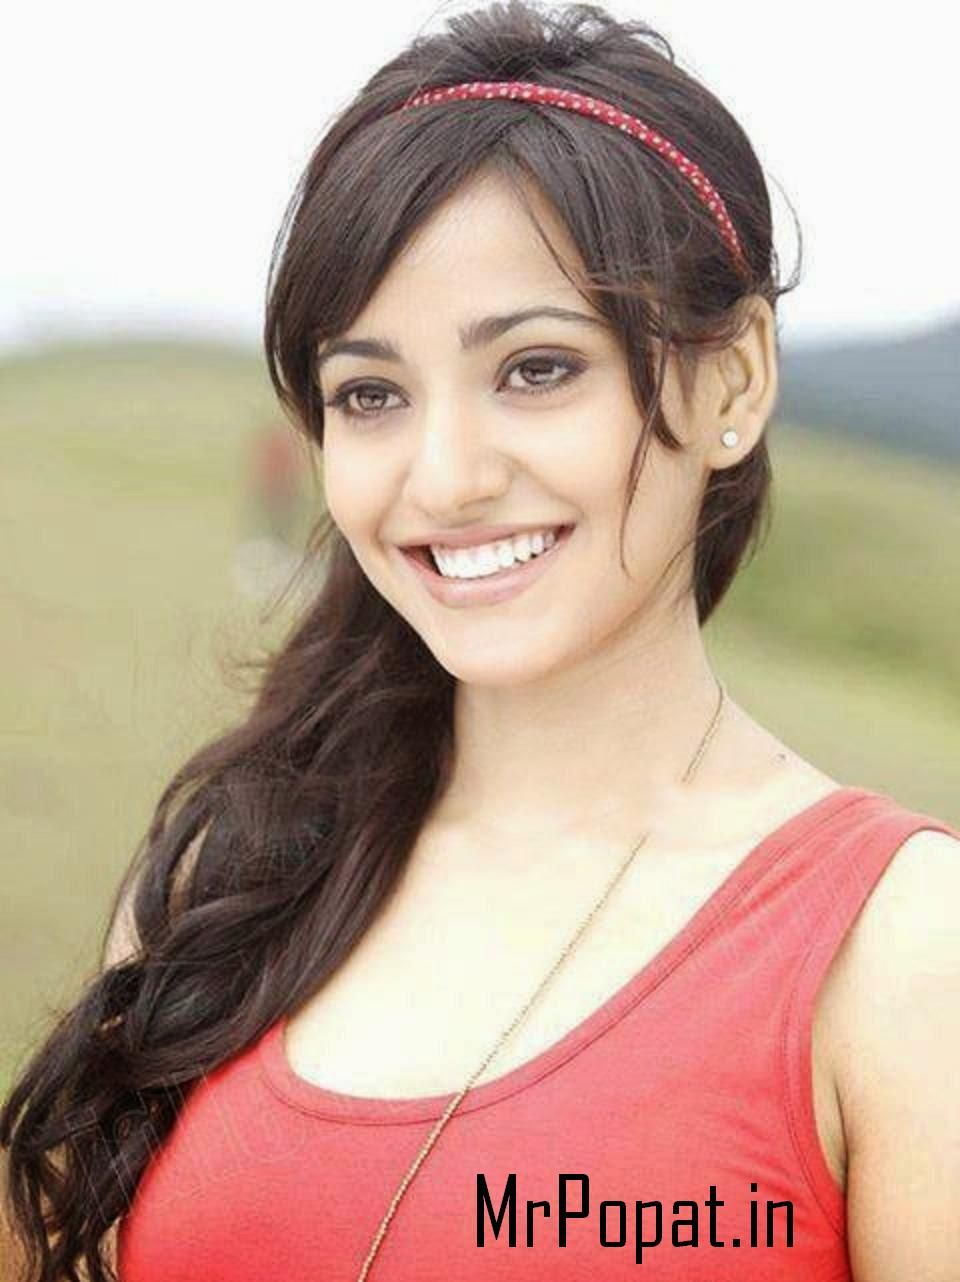 Download Bollywood Actress Hd Wallpapers For Mobile Gallery Bollywood Images Neha Sharma Actresses